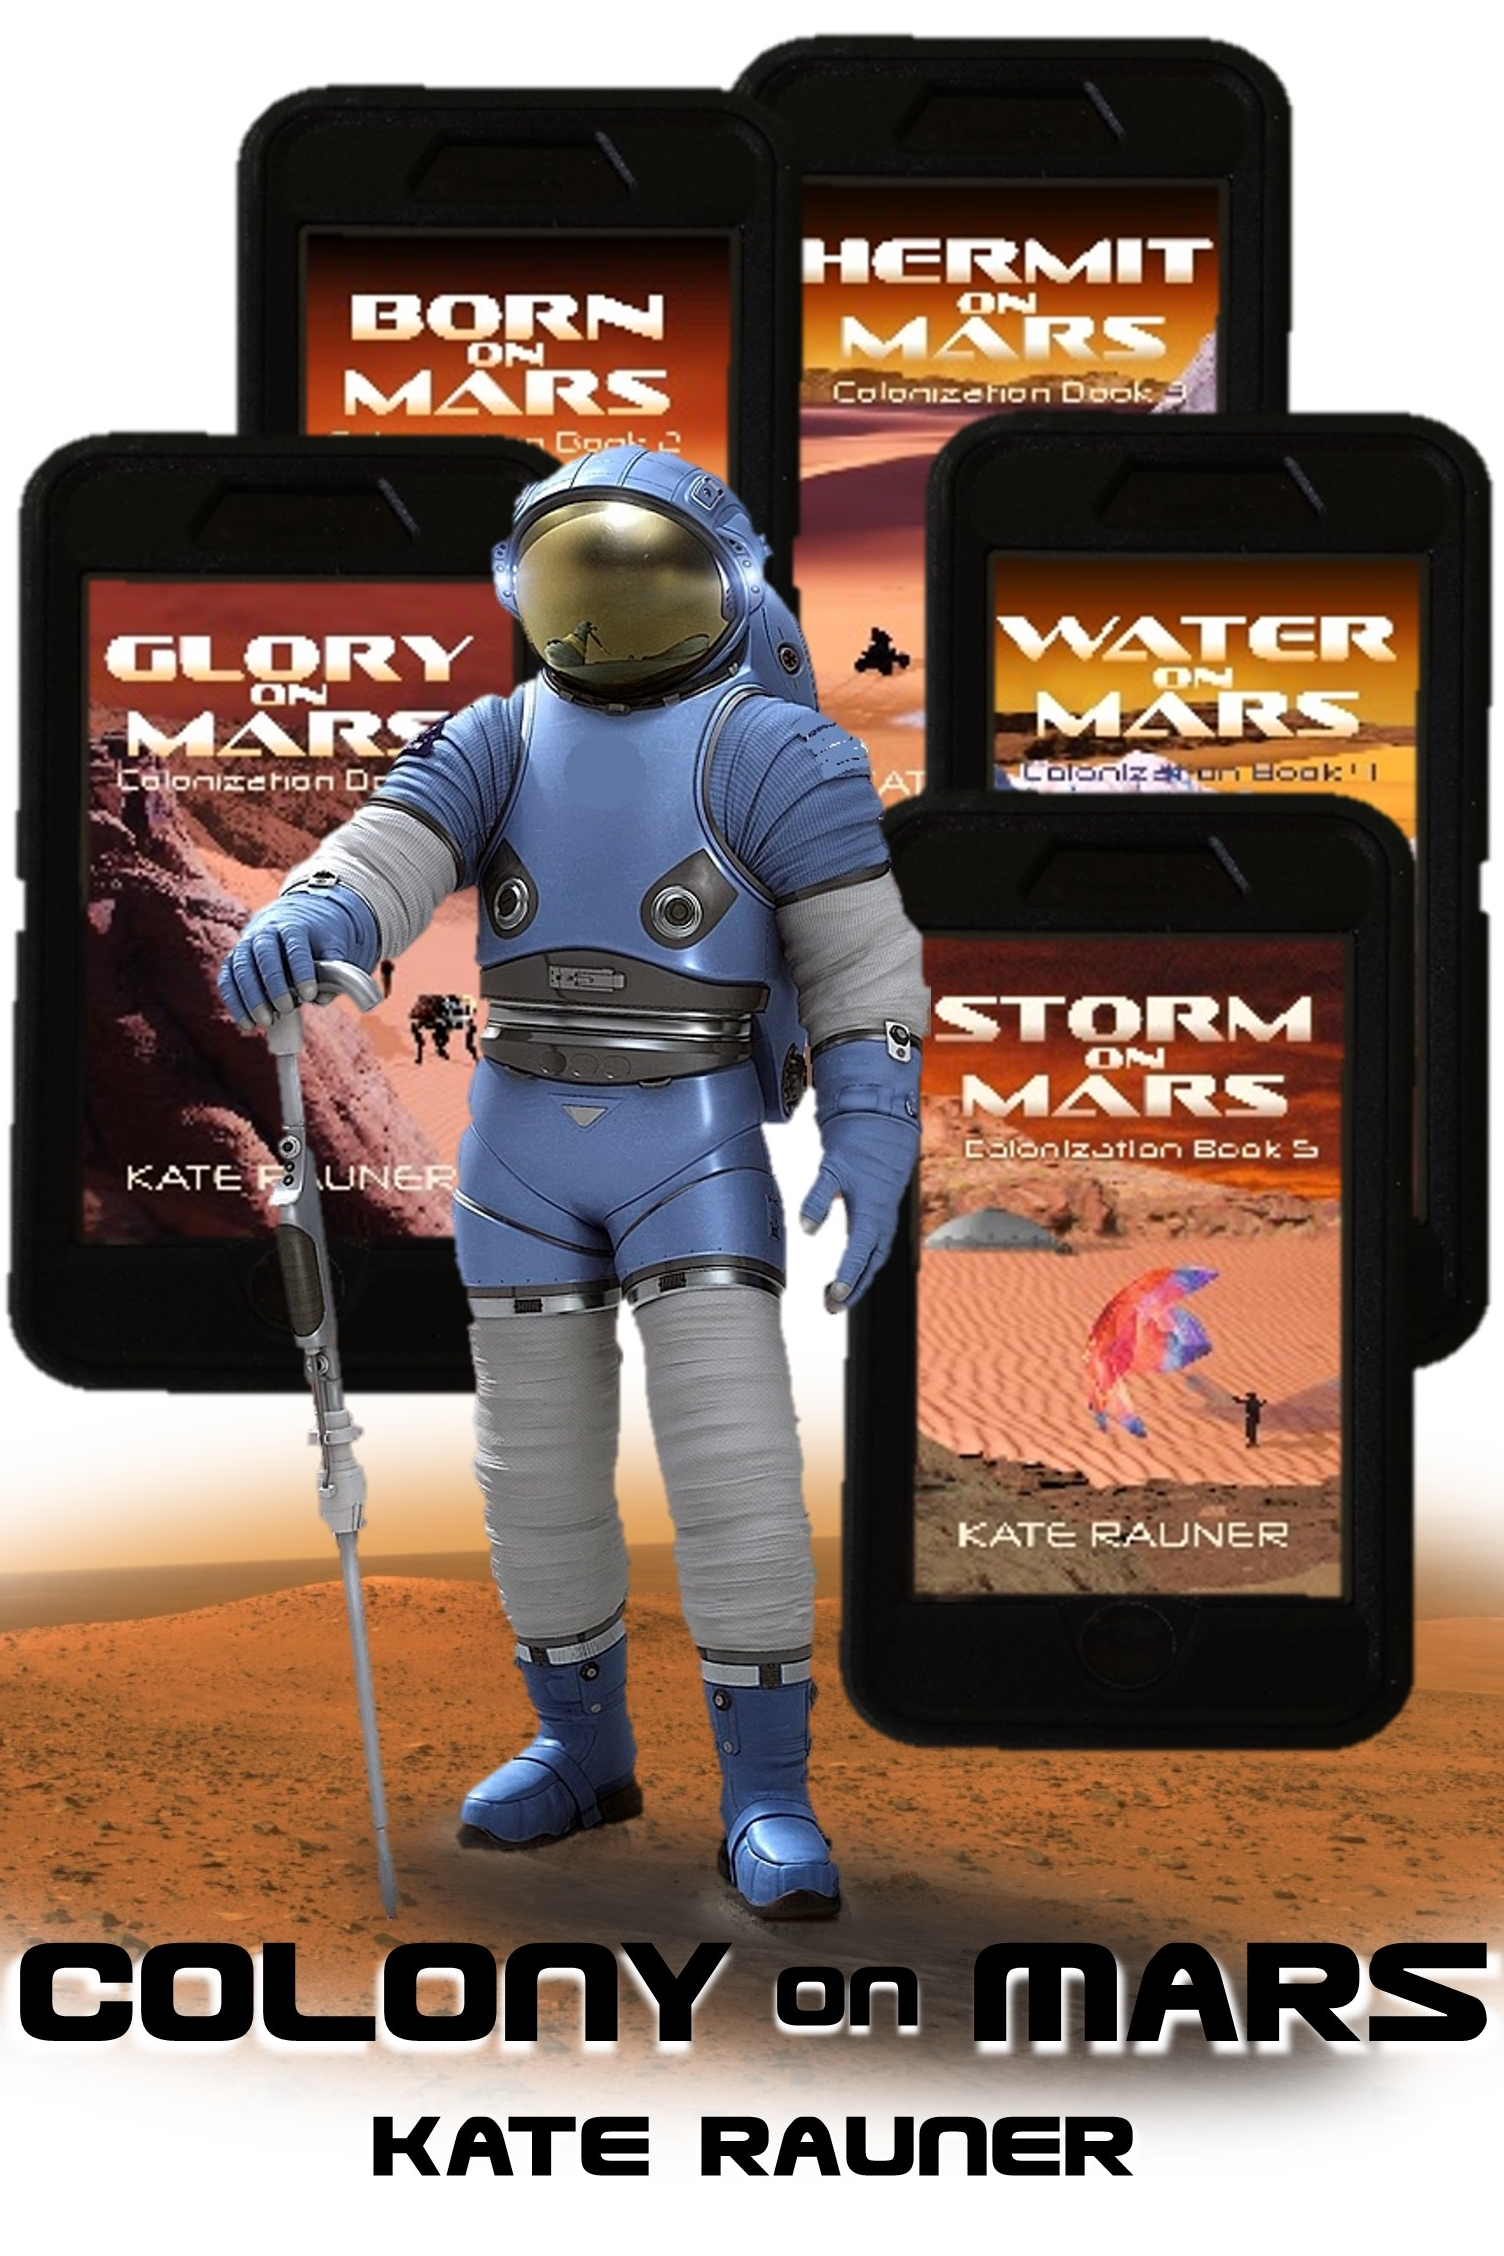 Colony on Mars bok covers